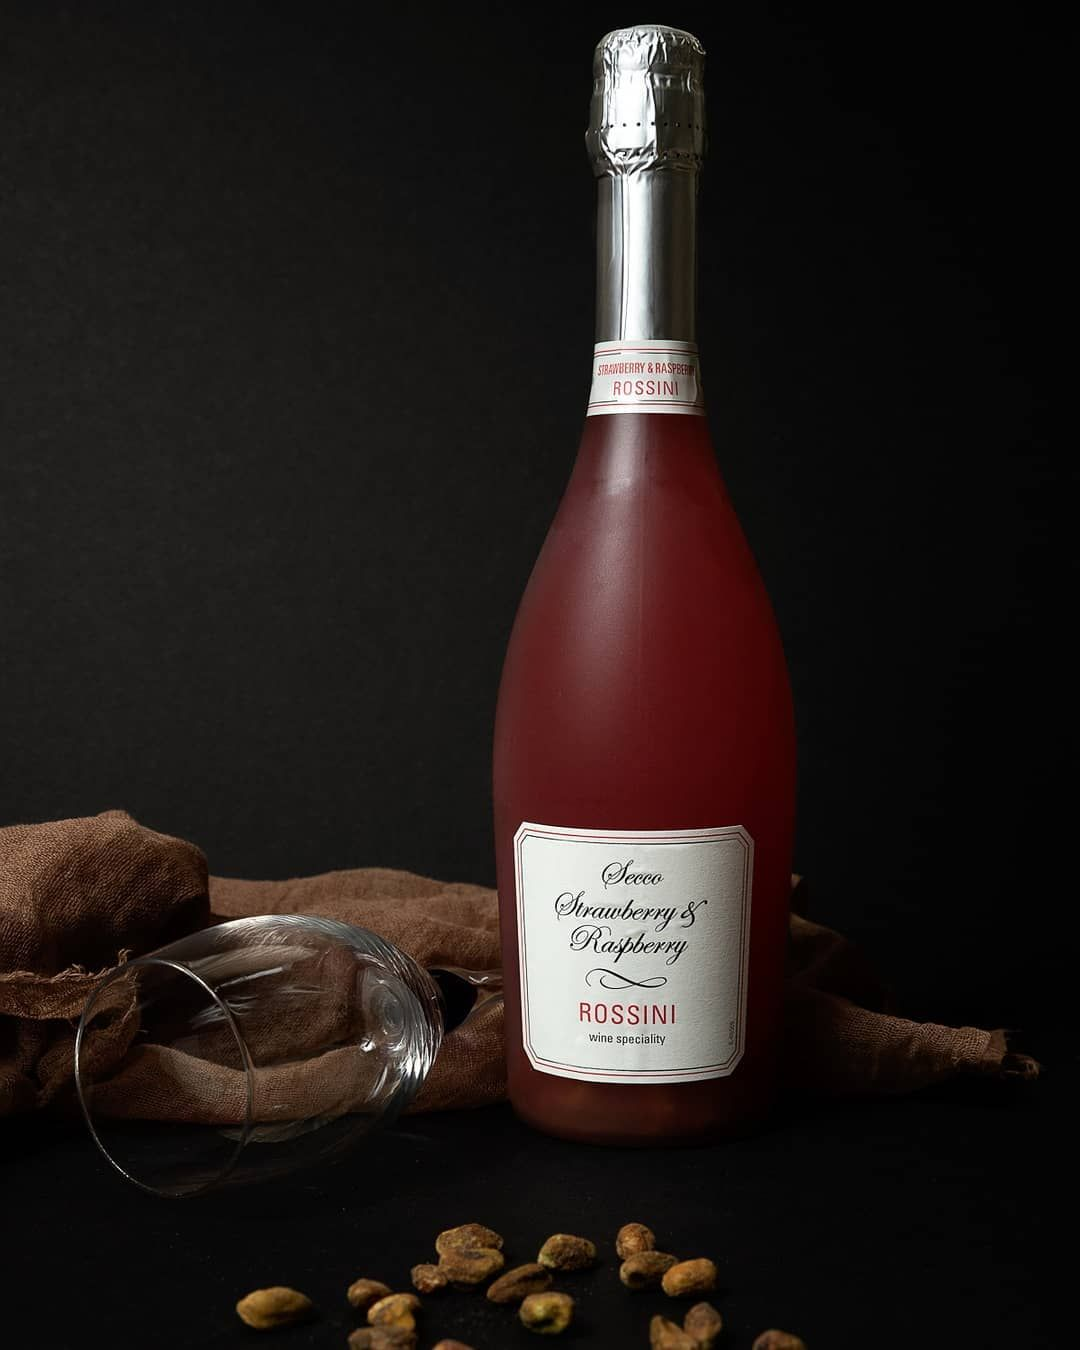 Couple Of Years Ago I Was Afraid Of Using Flash On My Photos However Learning Ocf Was One The Best Things In 2020 Holiday Wine Photographing Food Click Photo School